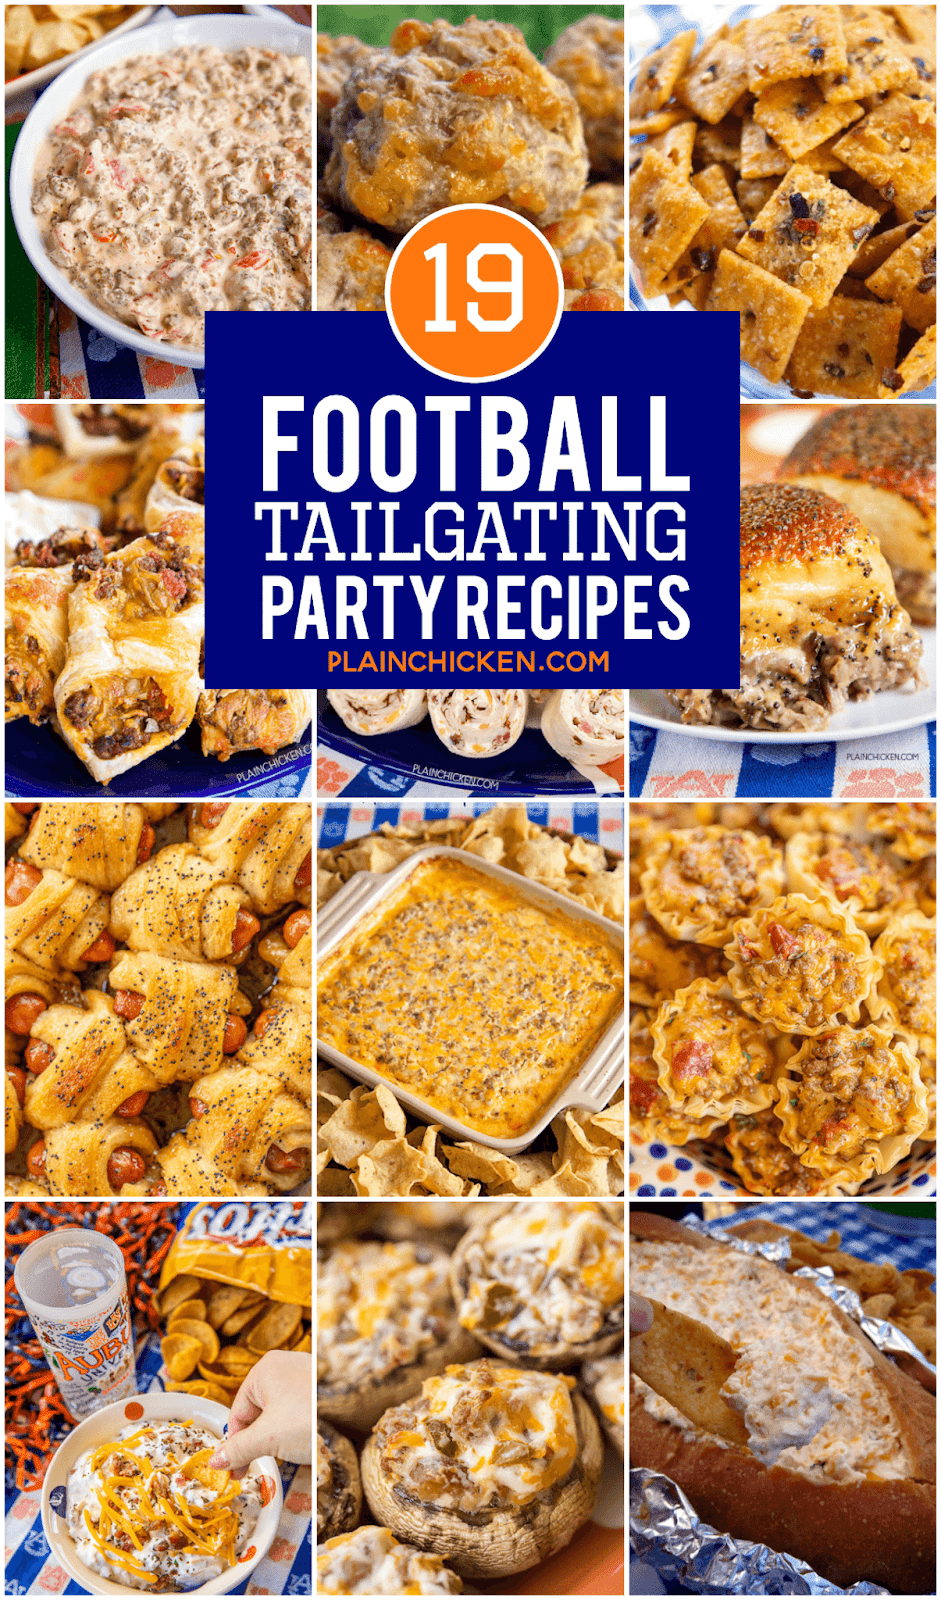 Tailgating Party Recipes For Football Season Plain Chicken